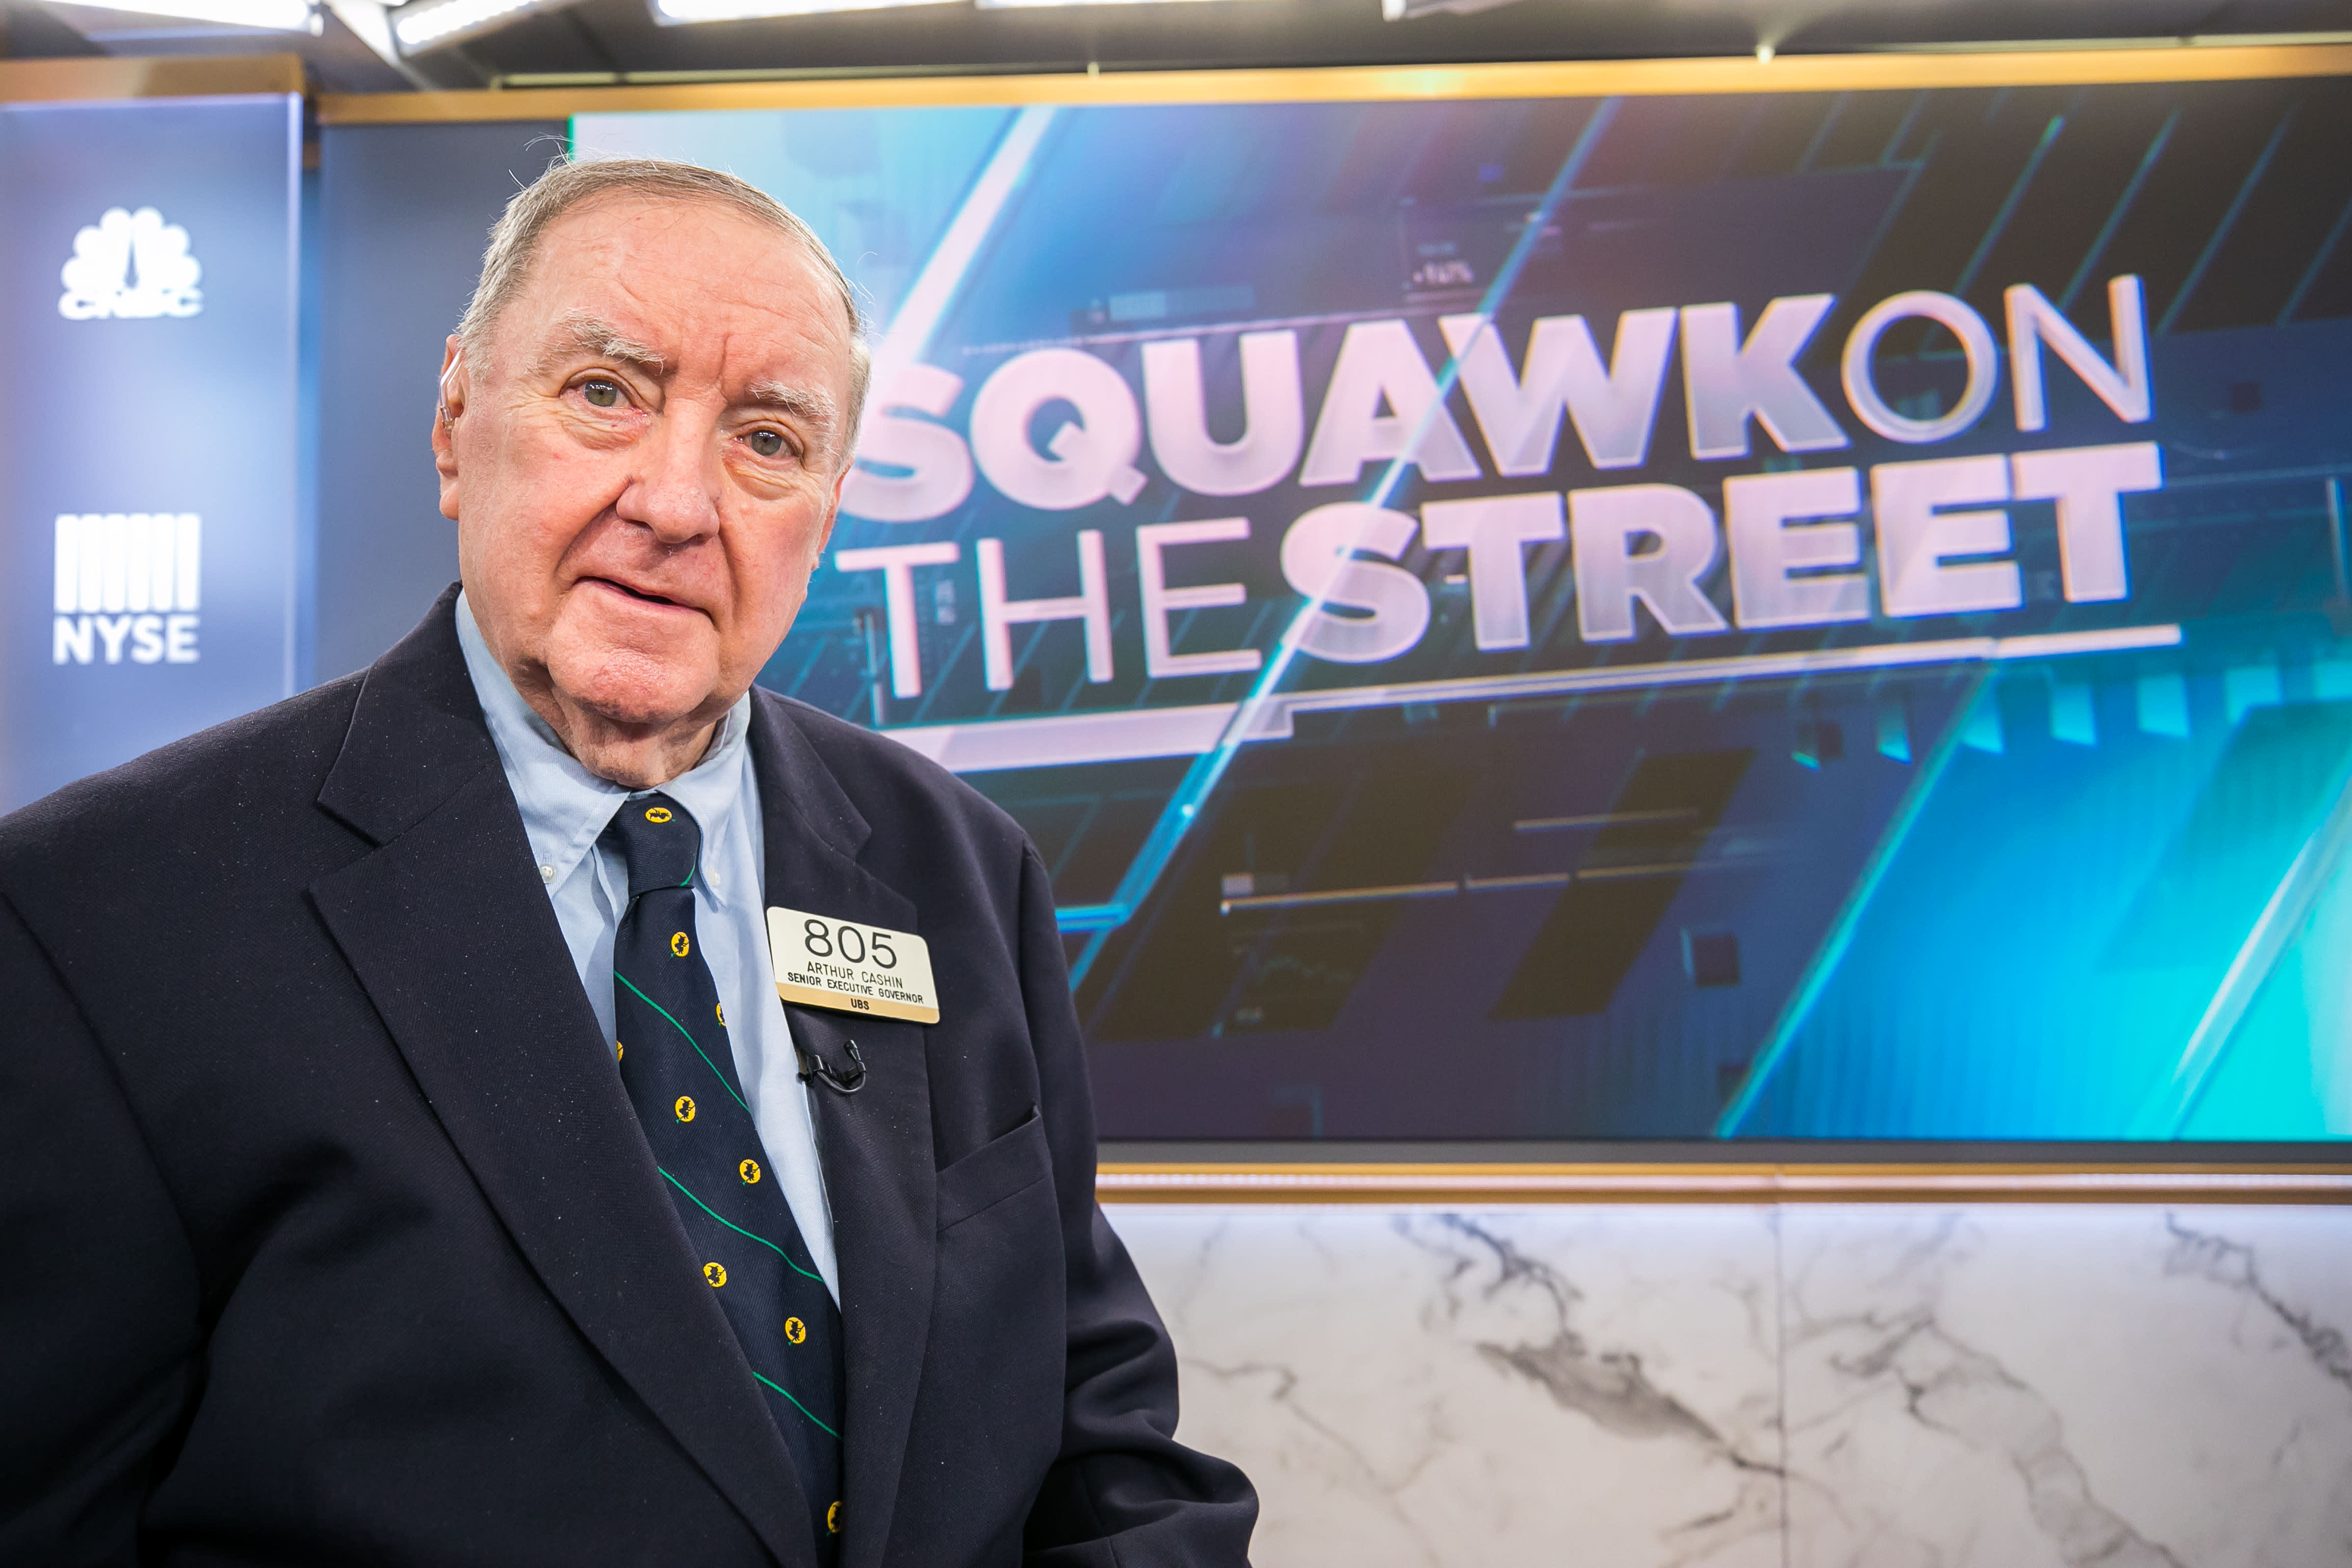 60-year veteran of Wall Street Art Cashin reflects on 9/11 and what it took to rebuild